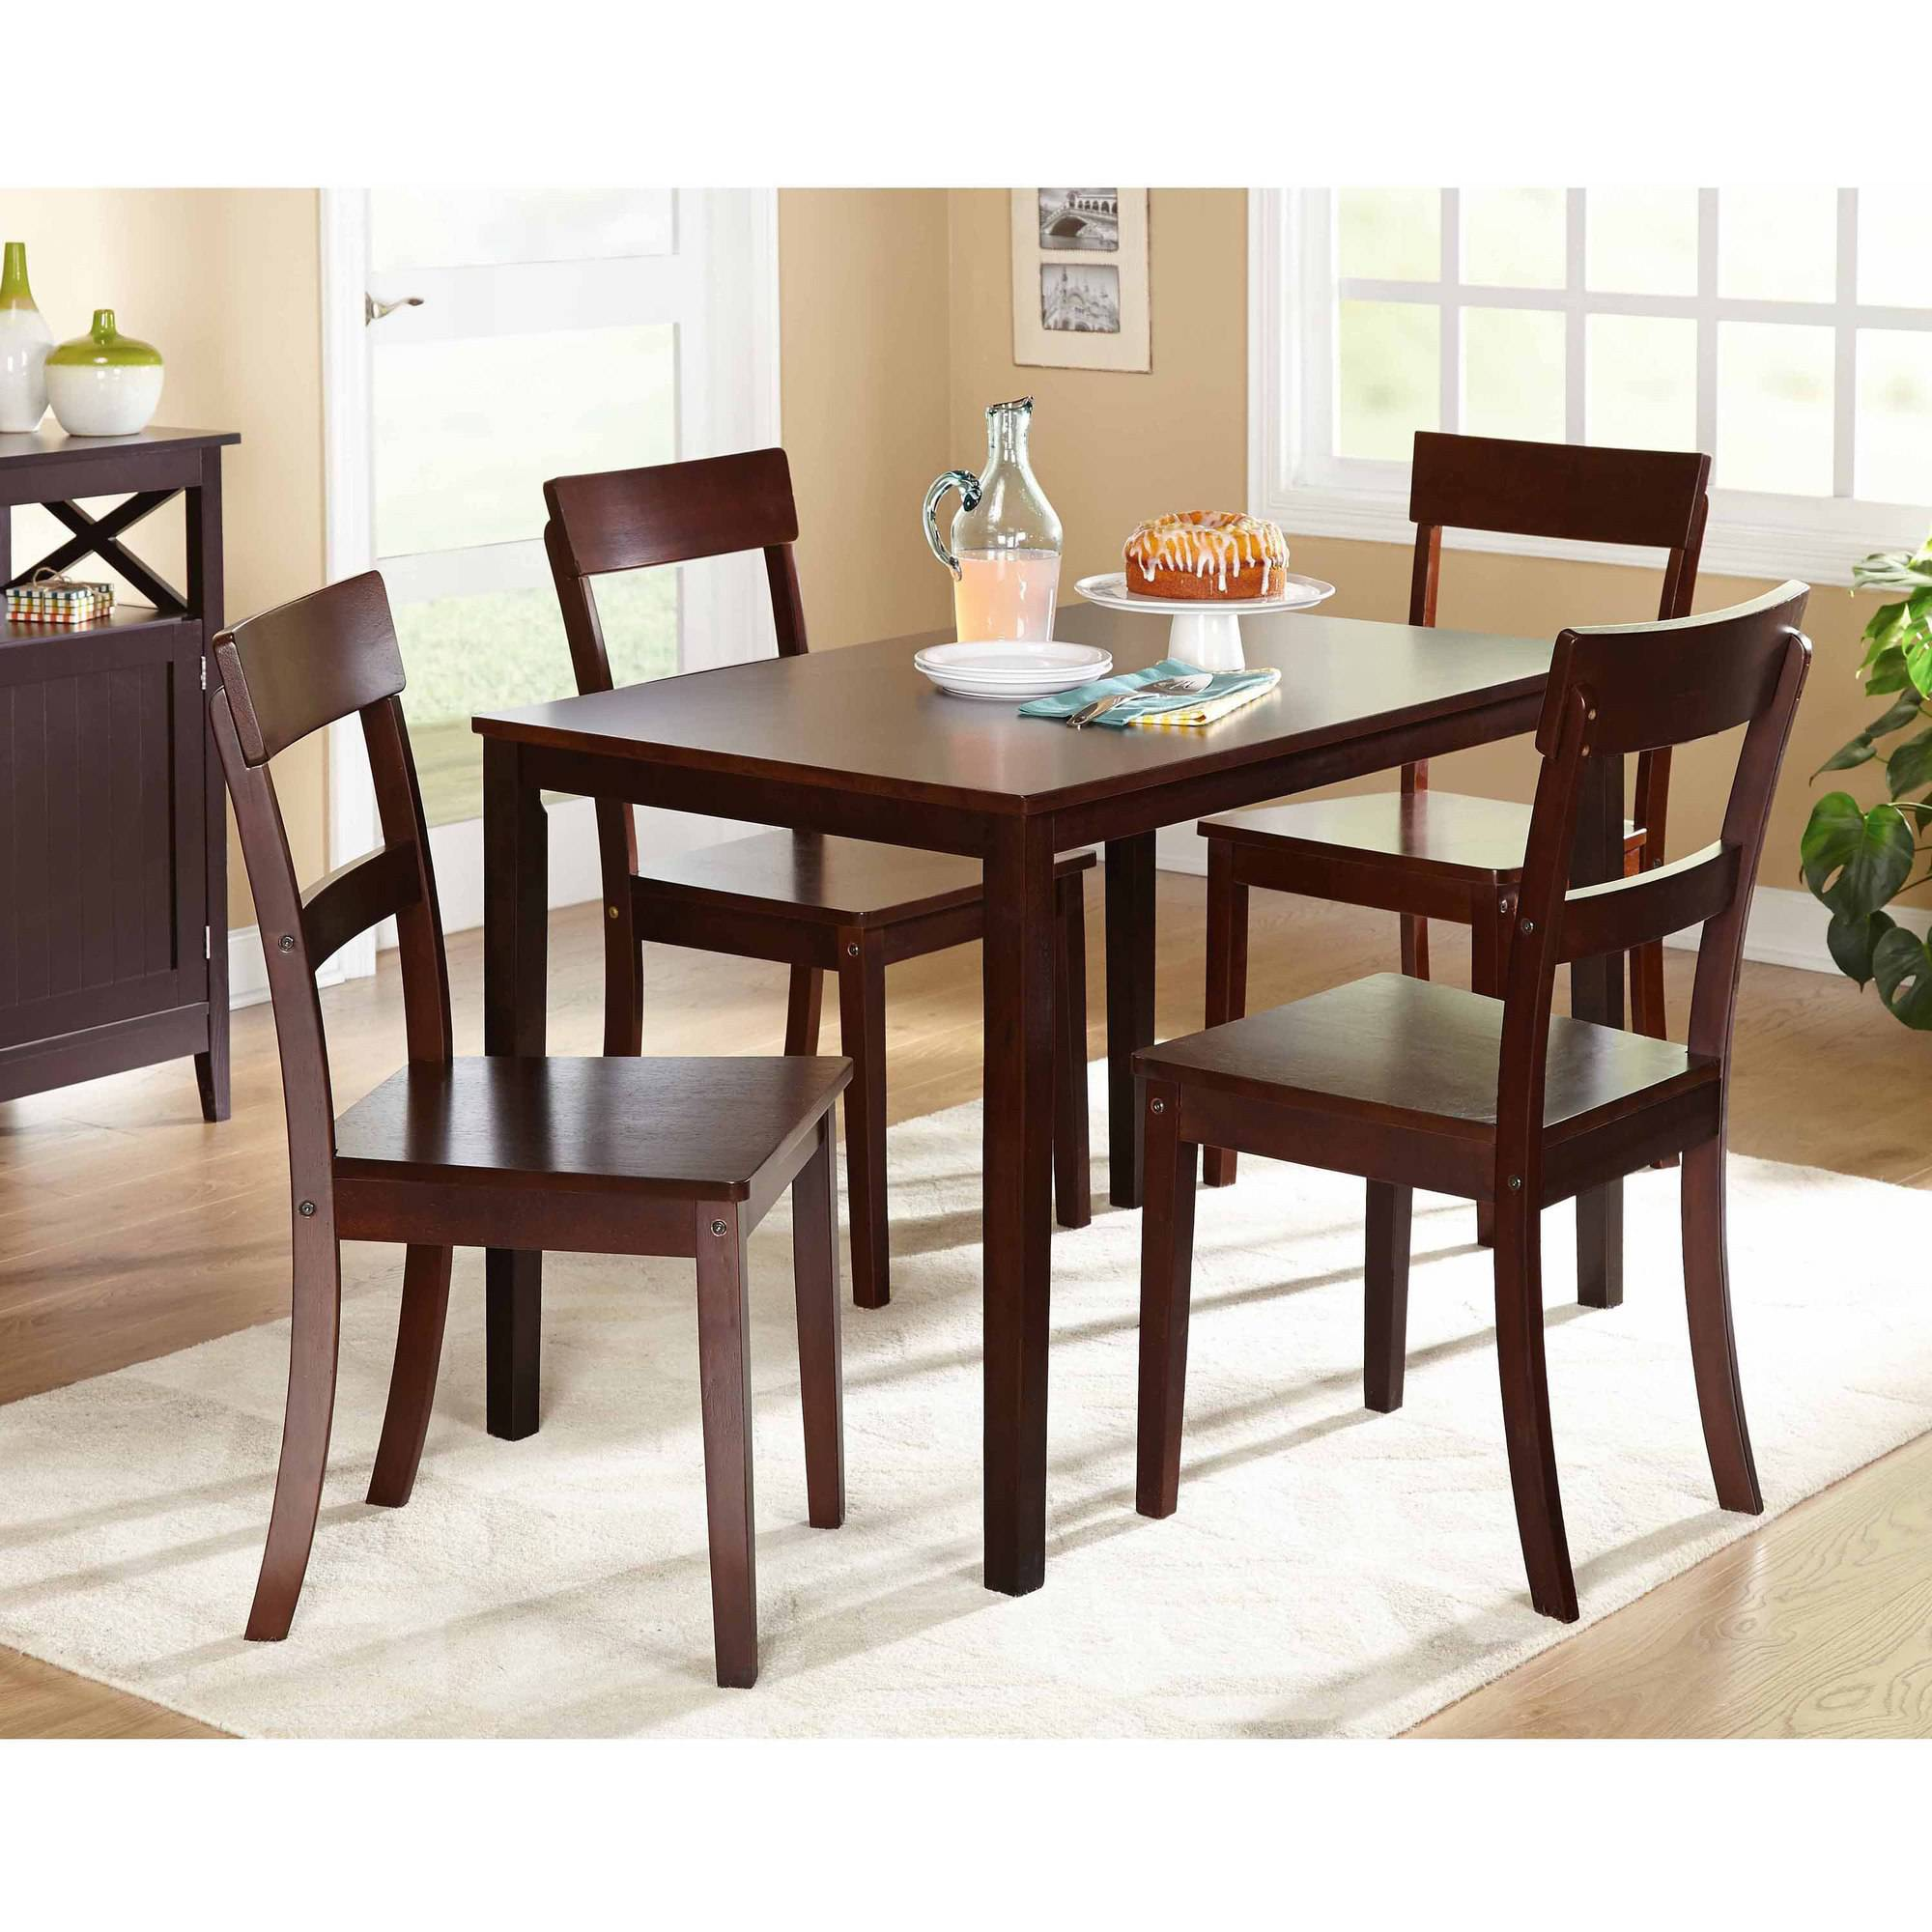 beverly 5 piece dining set multiple finishes walmart com